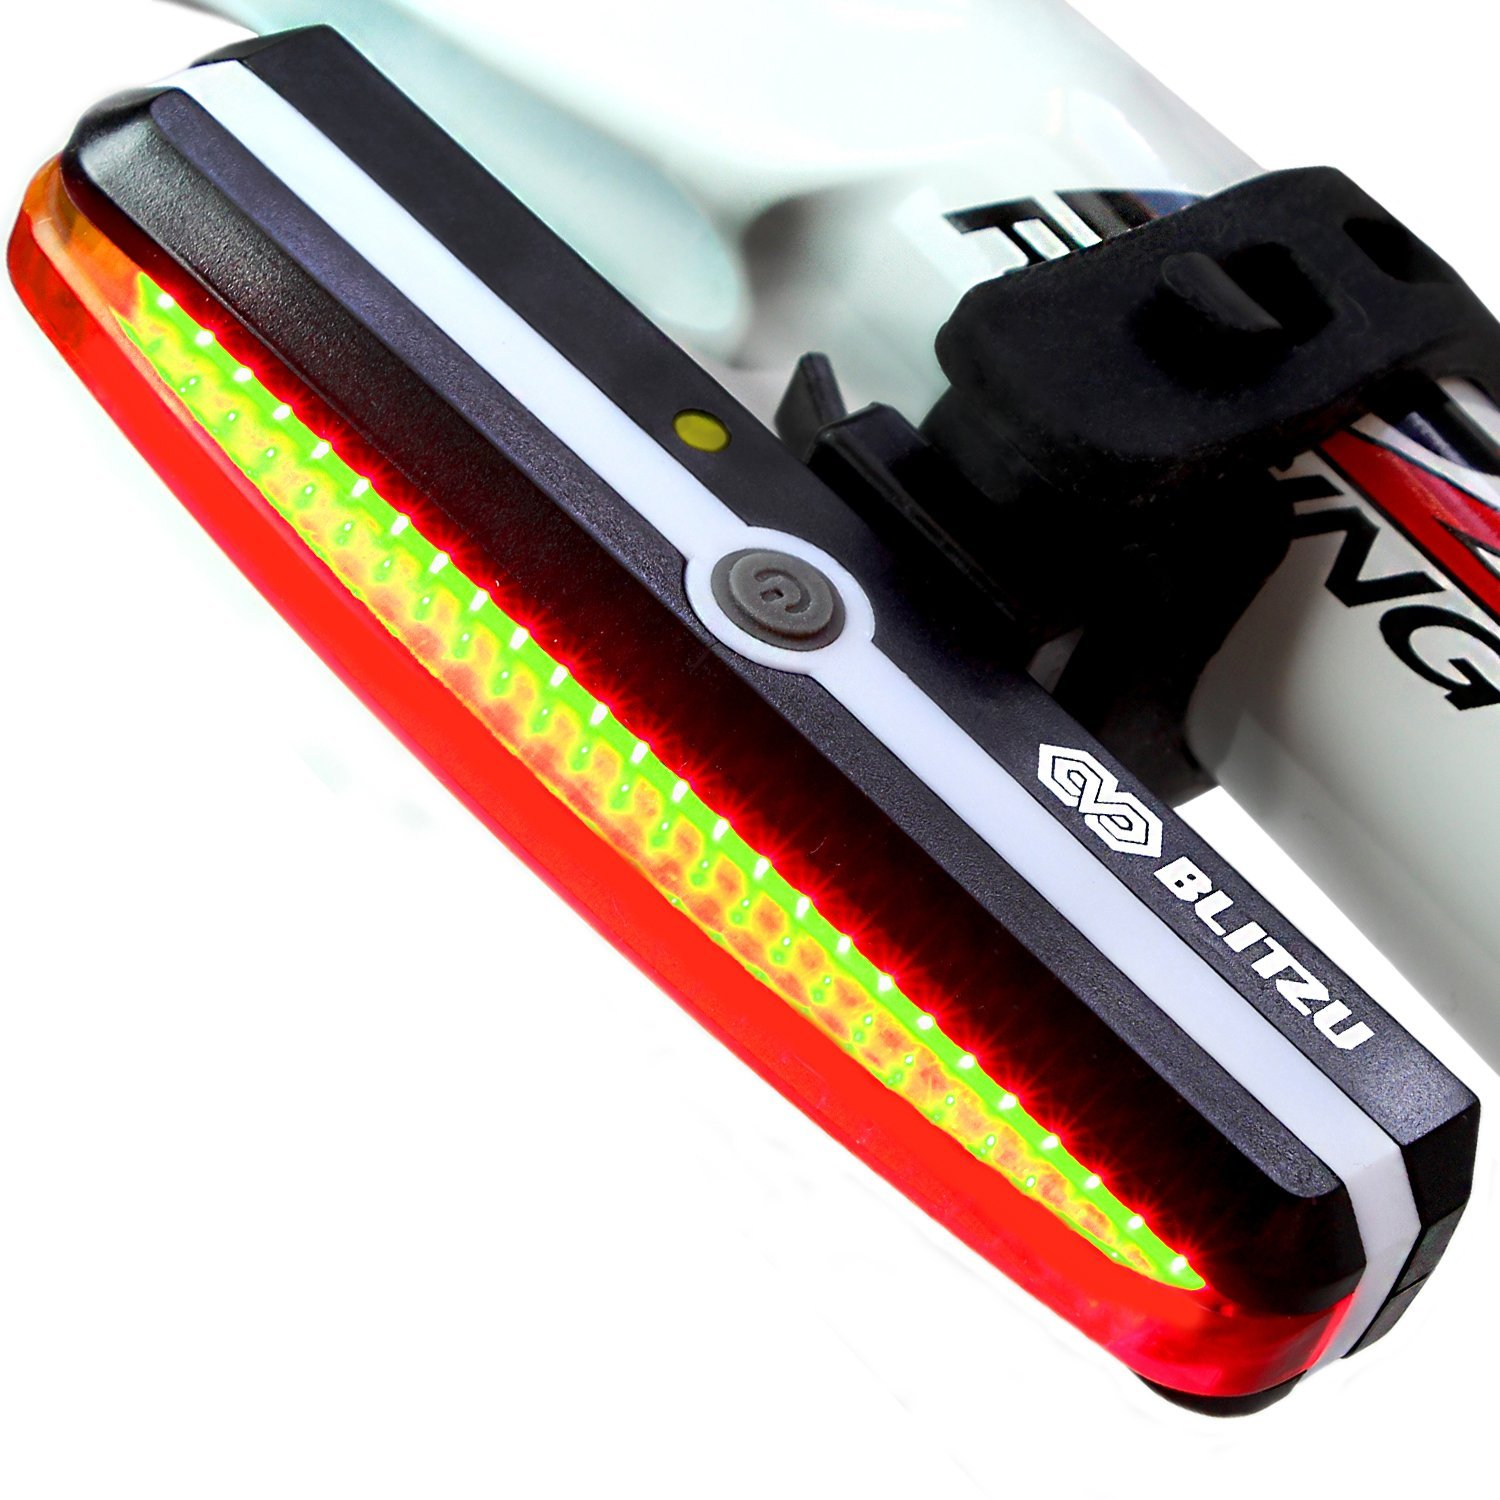 lighting light visit bike bicycle pin usb rear rechargeable taillight warning to cob safety led deemount lights buy